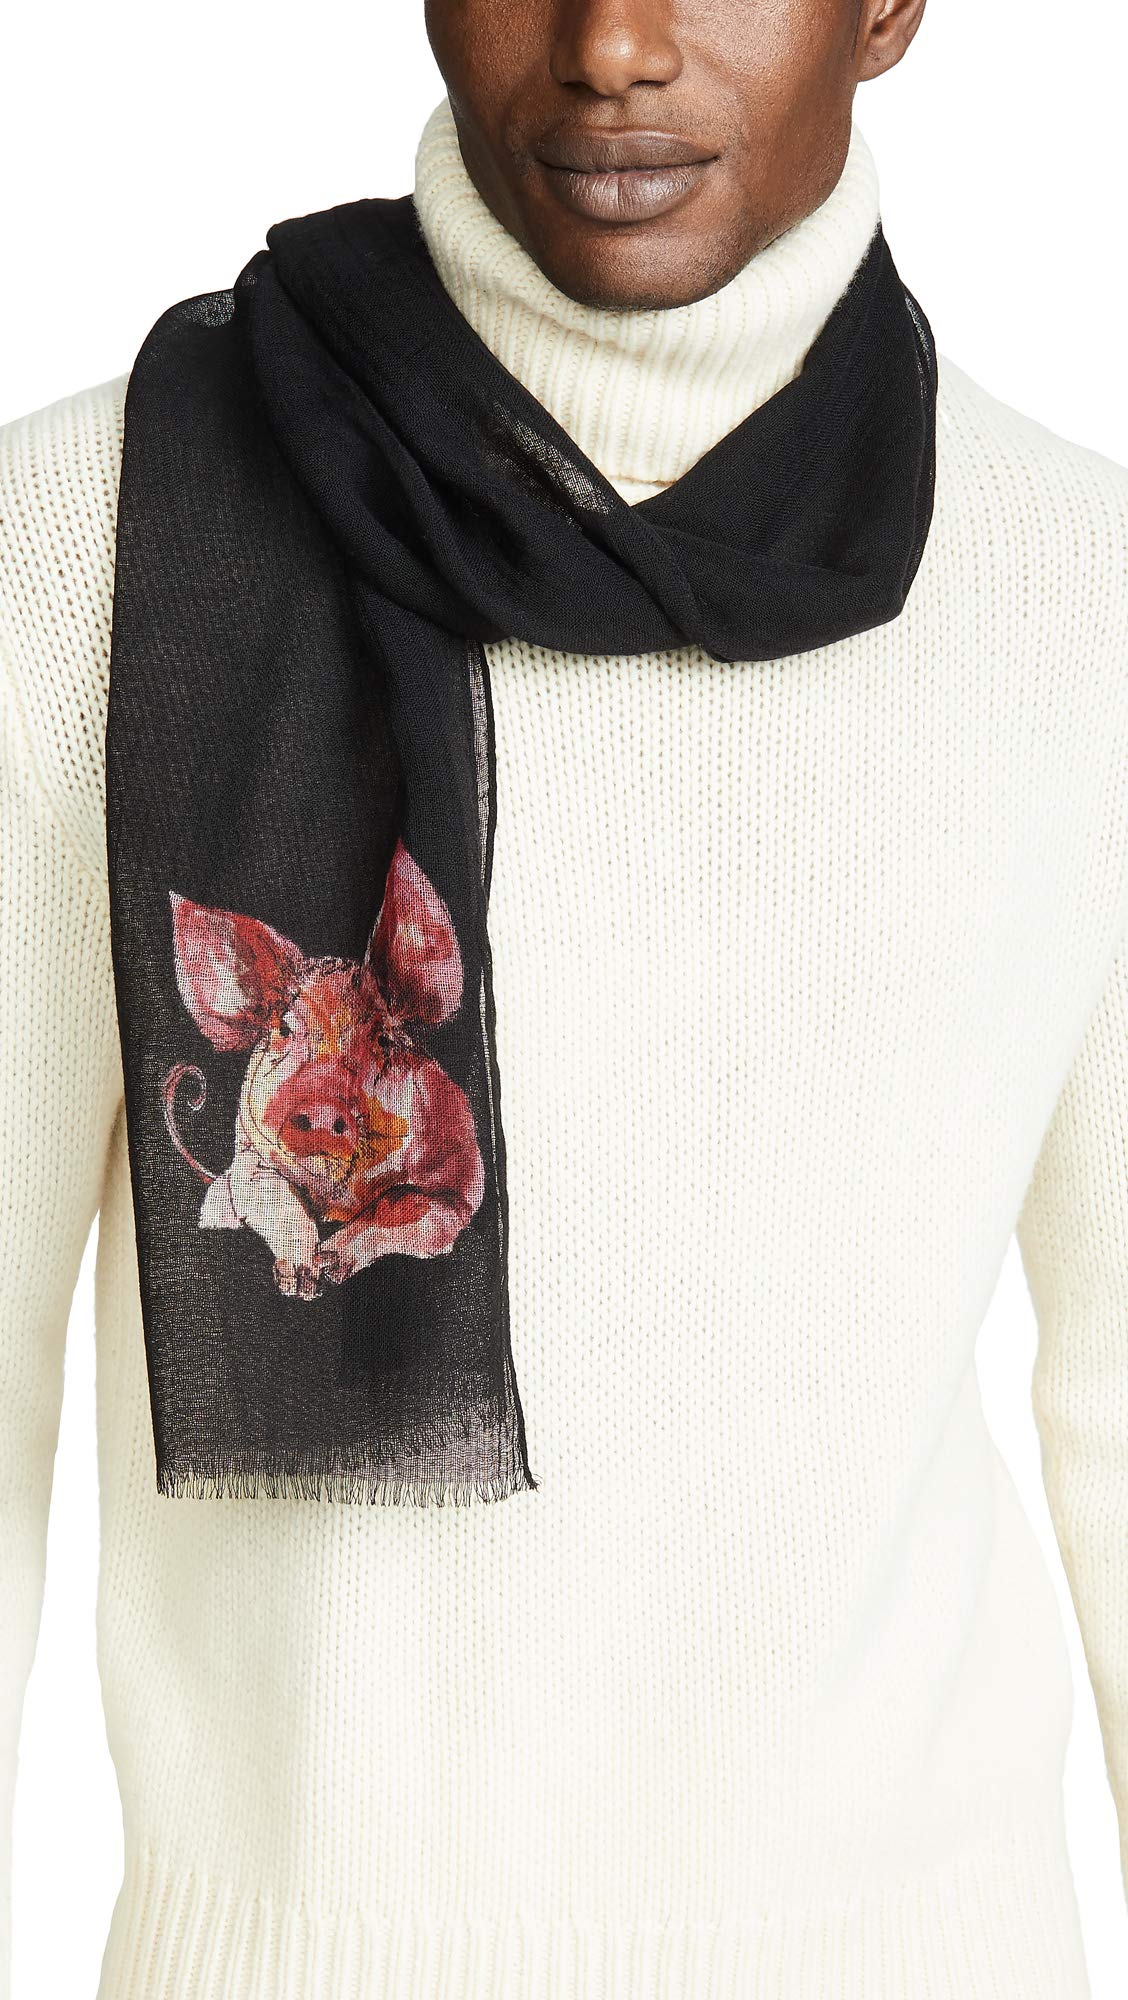 Paul Smith Men's Pig Scarf, Black, One Size by Paul Smith (Image #1)